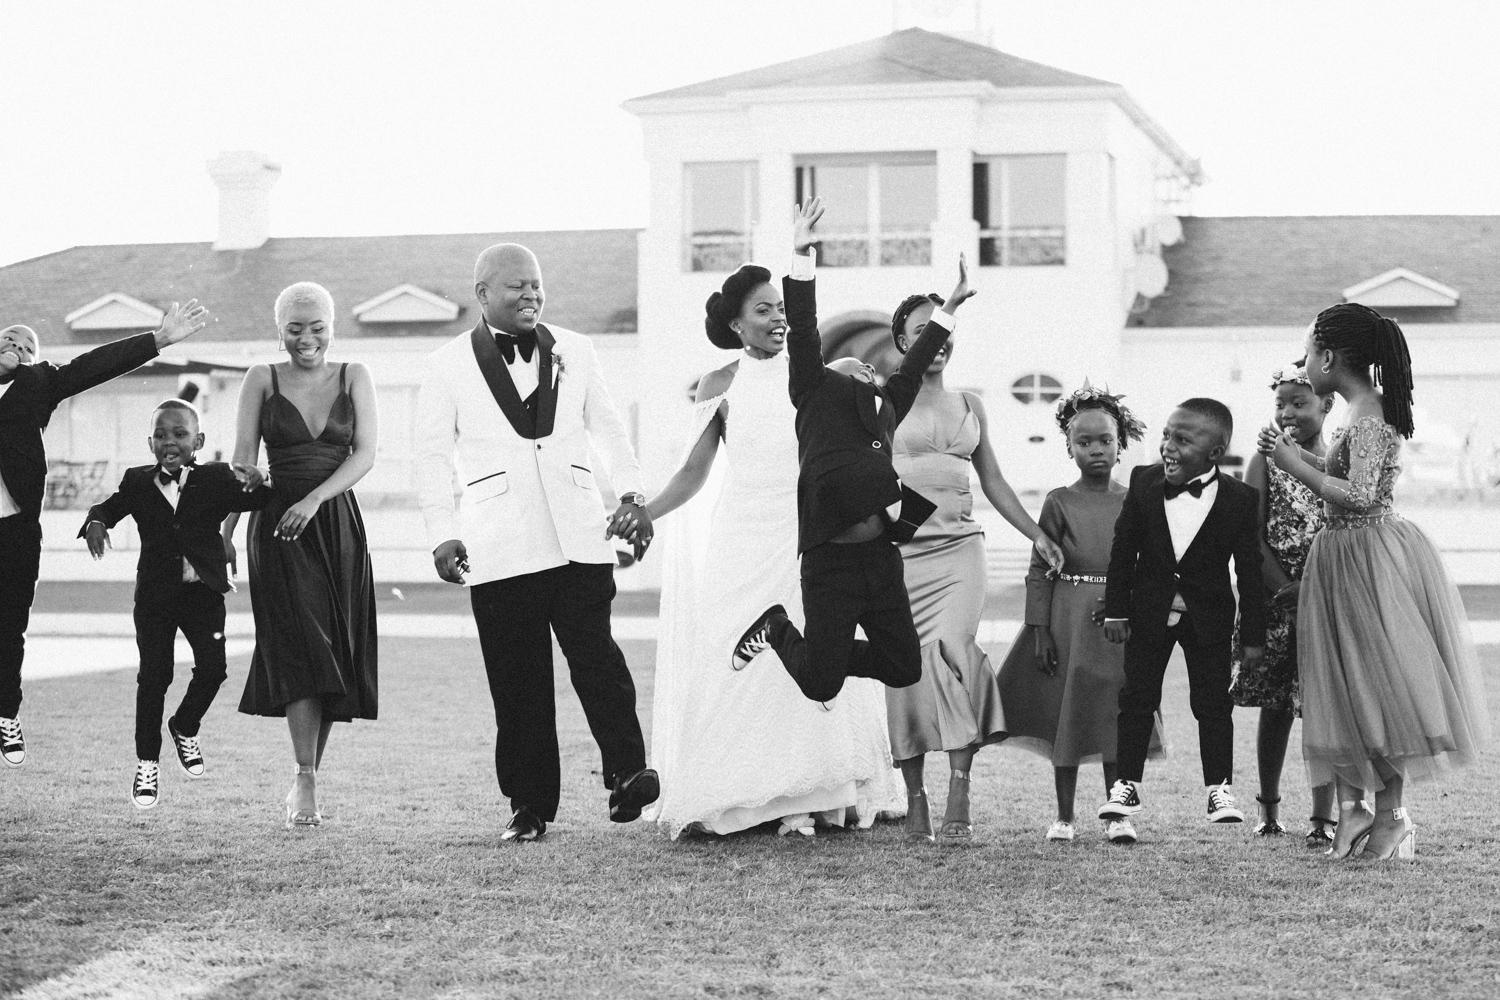 a black and white image taken by Vividblue of the bridal party and kids jumping in the air at a wedding in Val De Vie